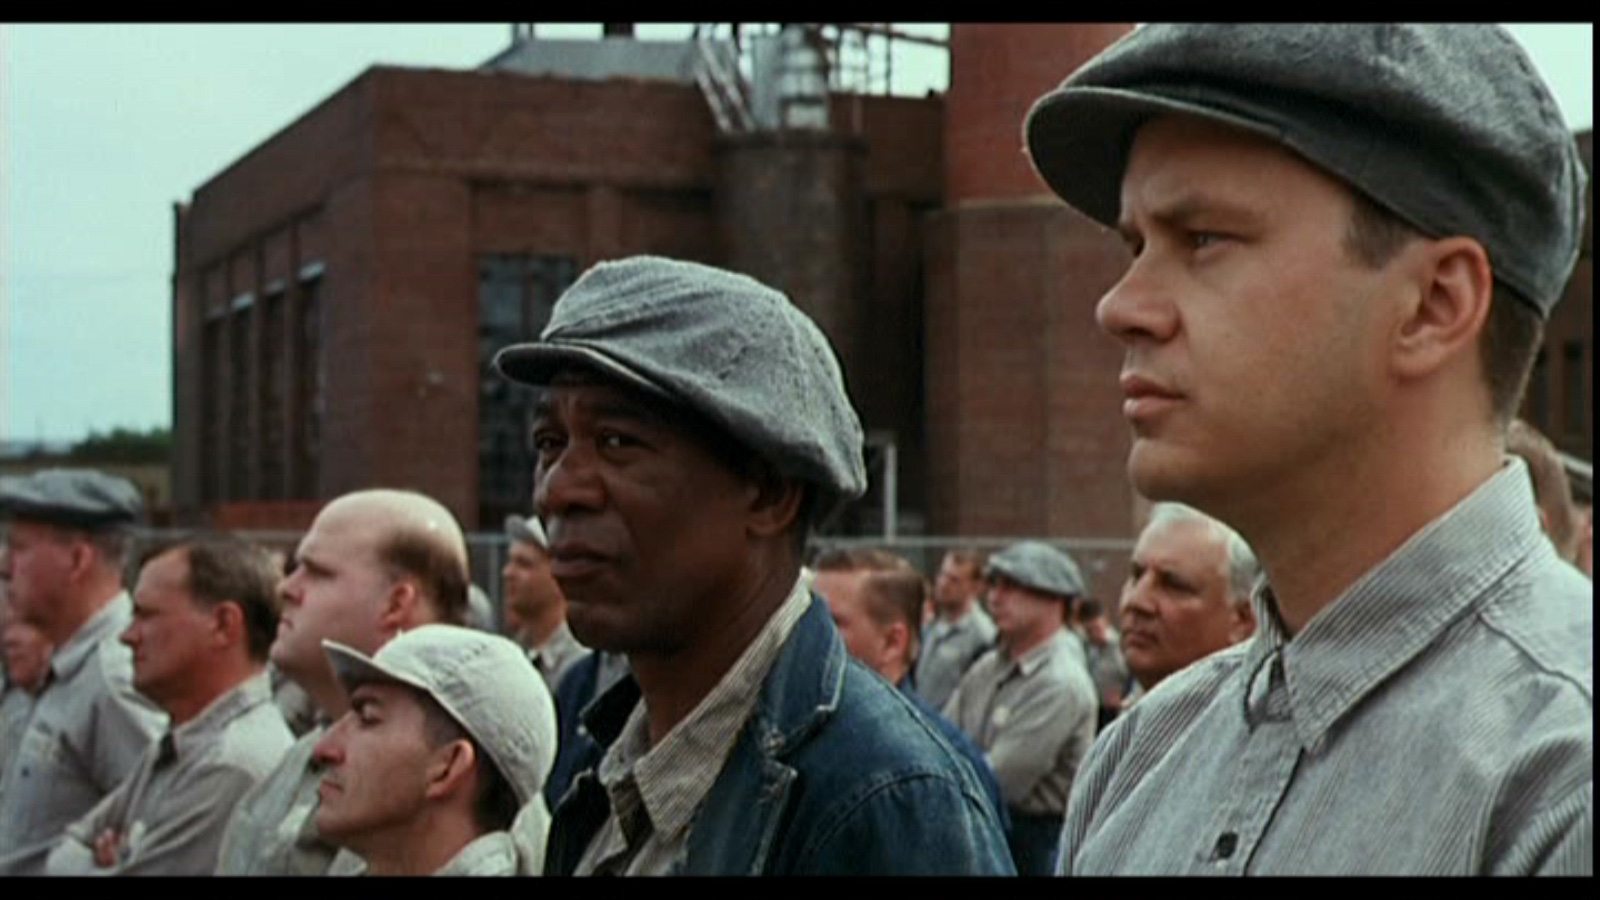 shawshank redemption Free shipping on orders over $35 buy the shawshank redemption at walmartcom.